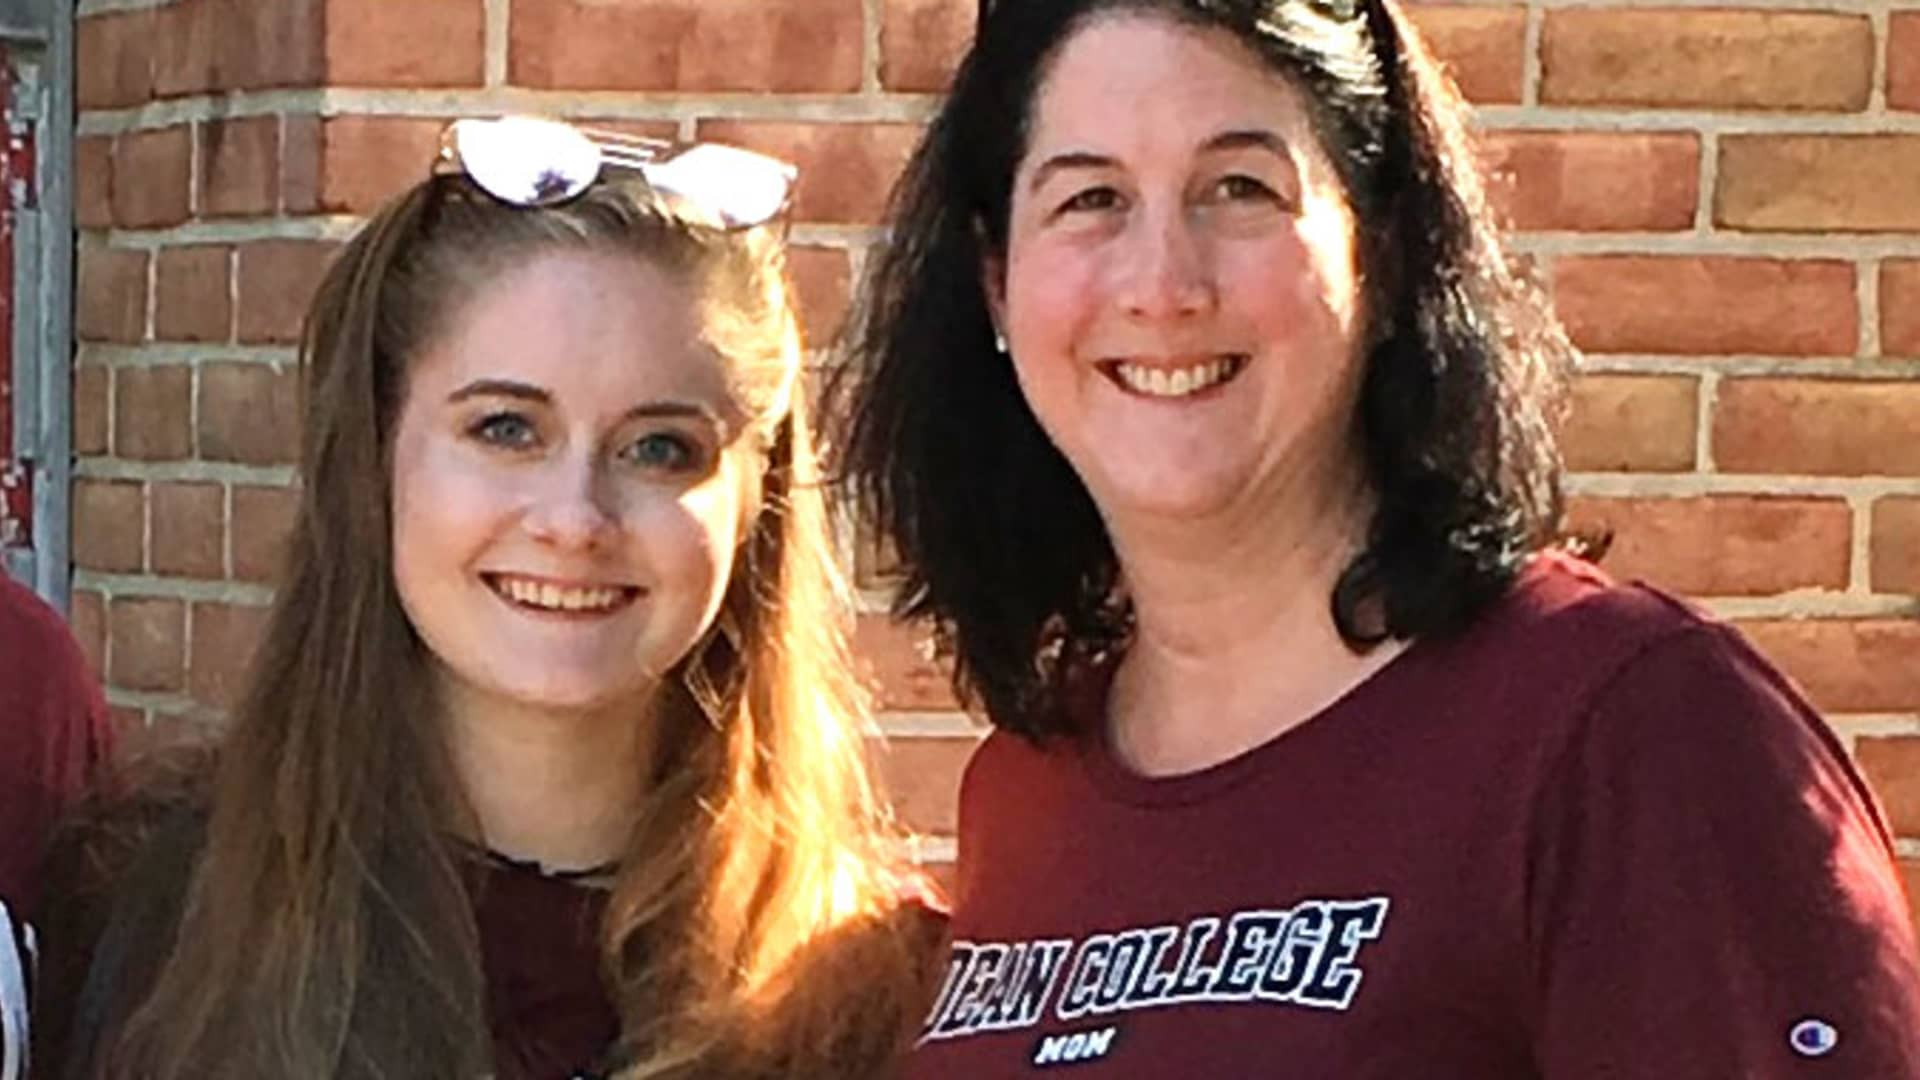 Laura Hoder with her daughter at Dean College.